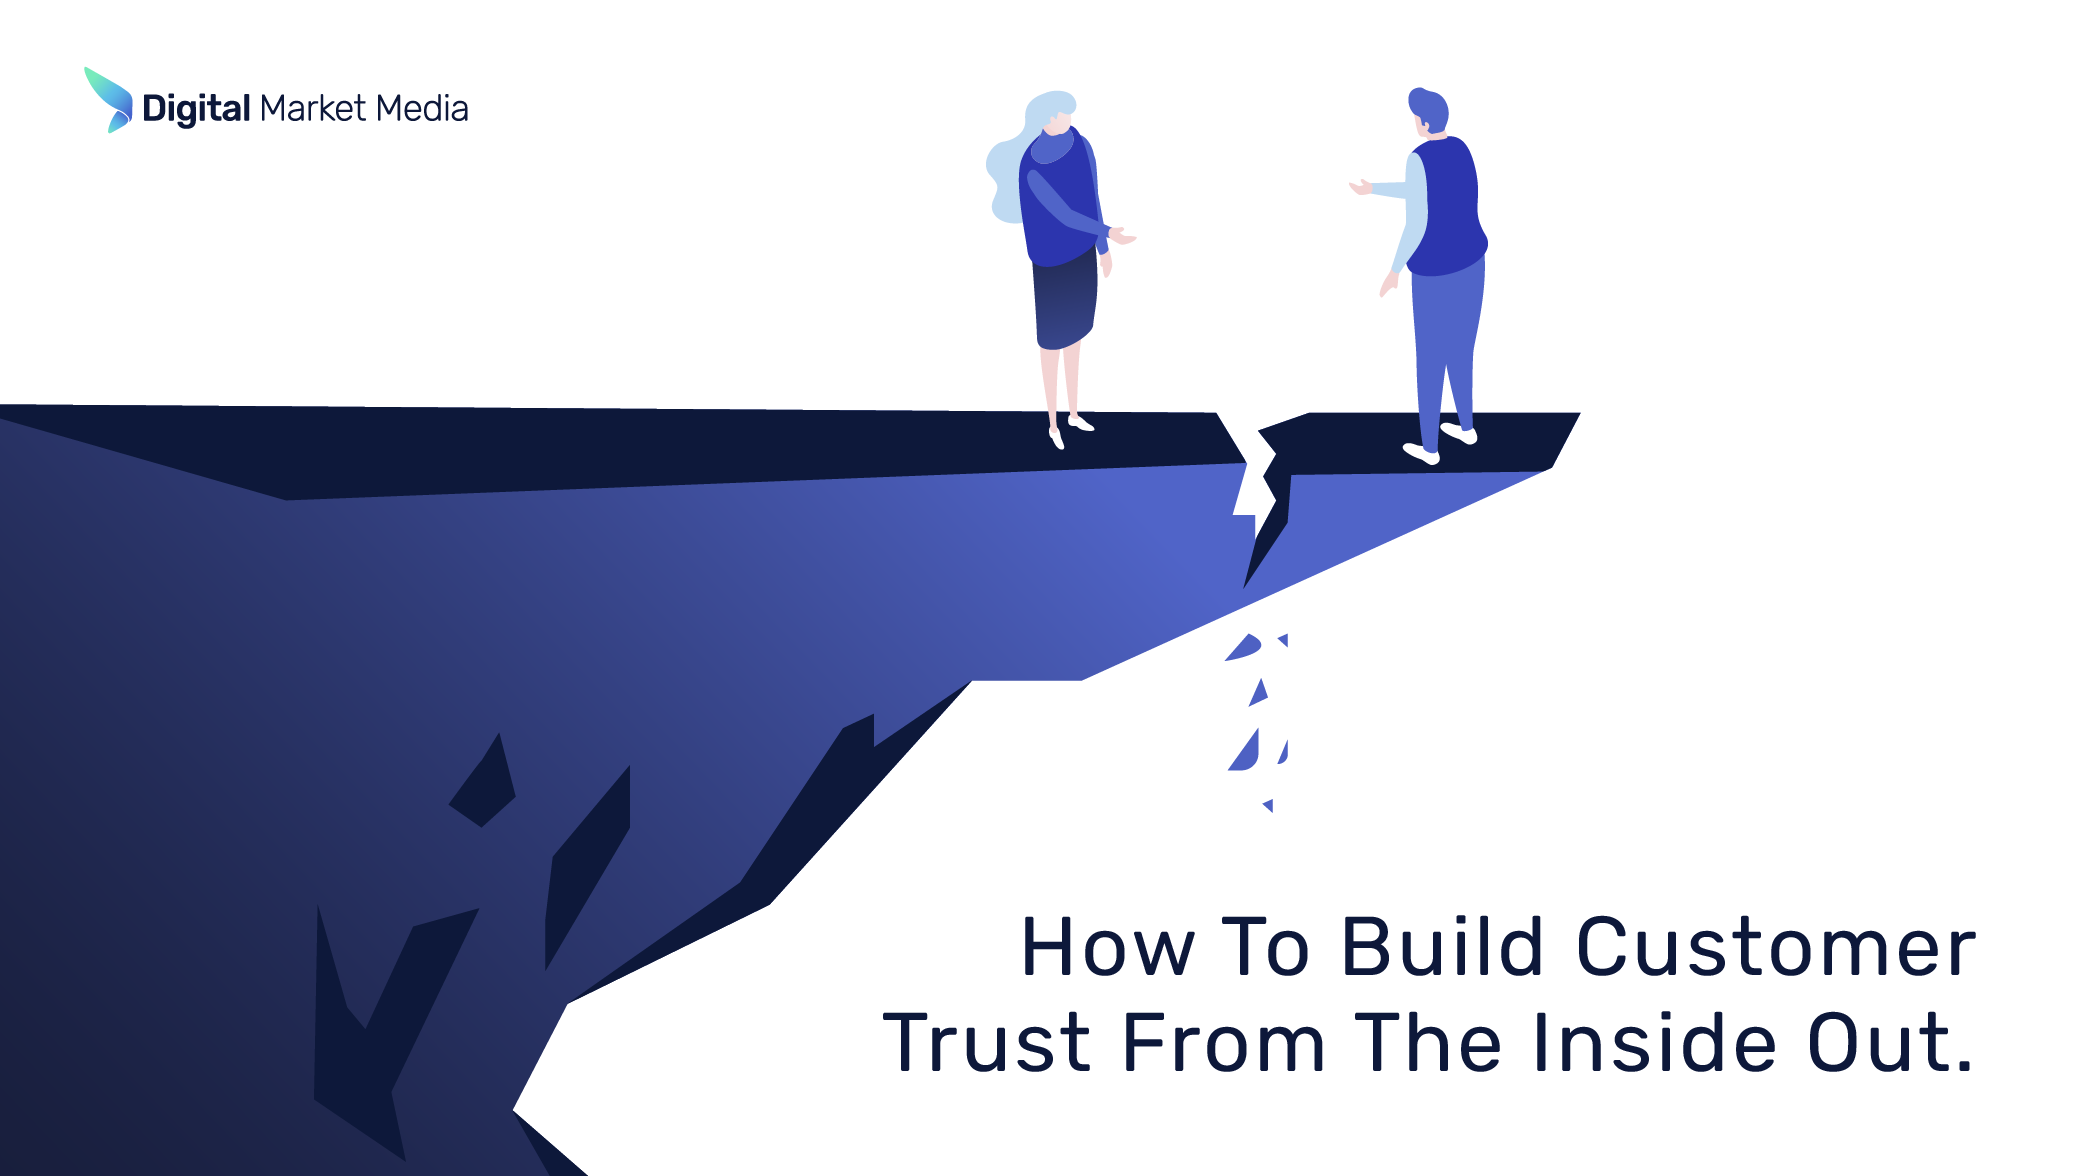 How to Build Customer Trust from the Inside Out